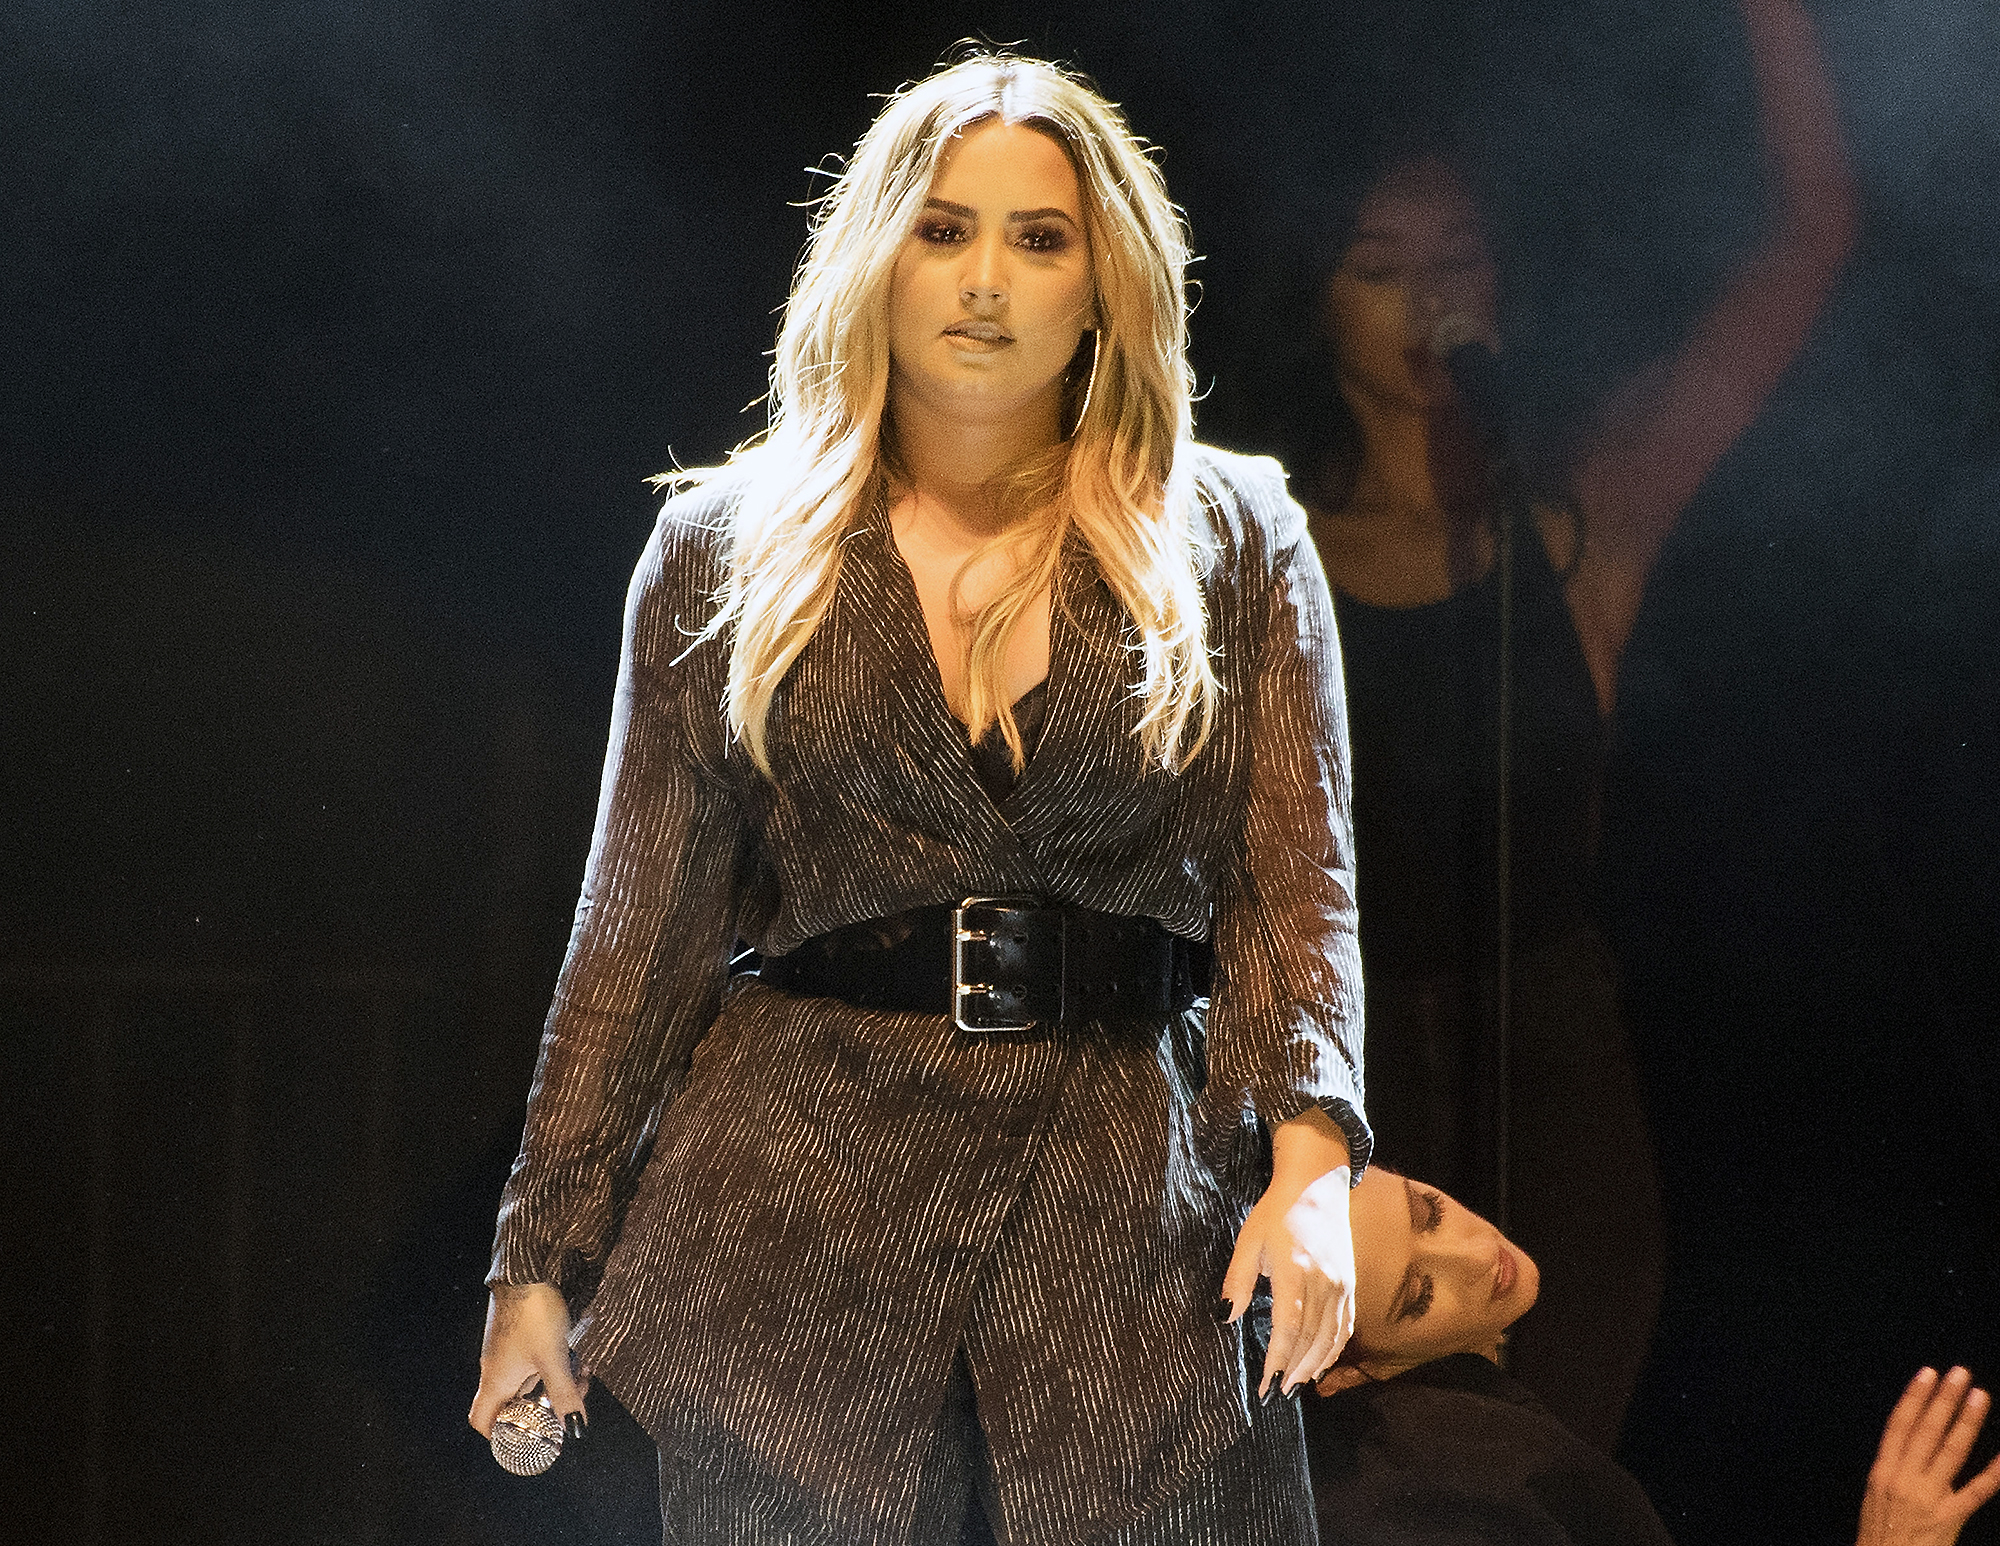 Demi Lovato Last Tour No Alcohol